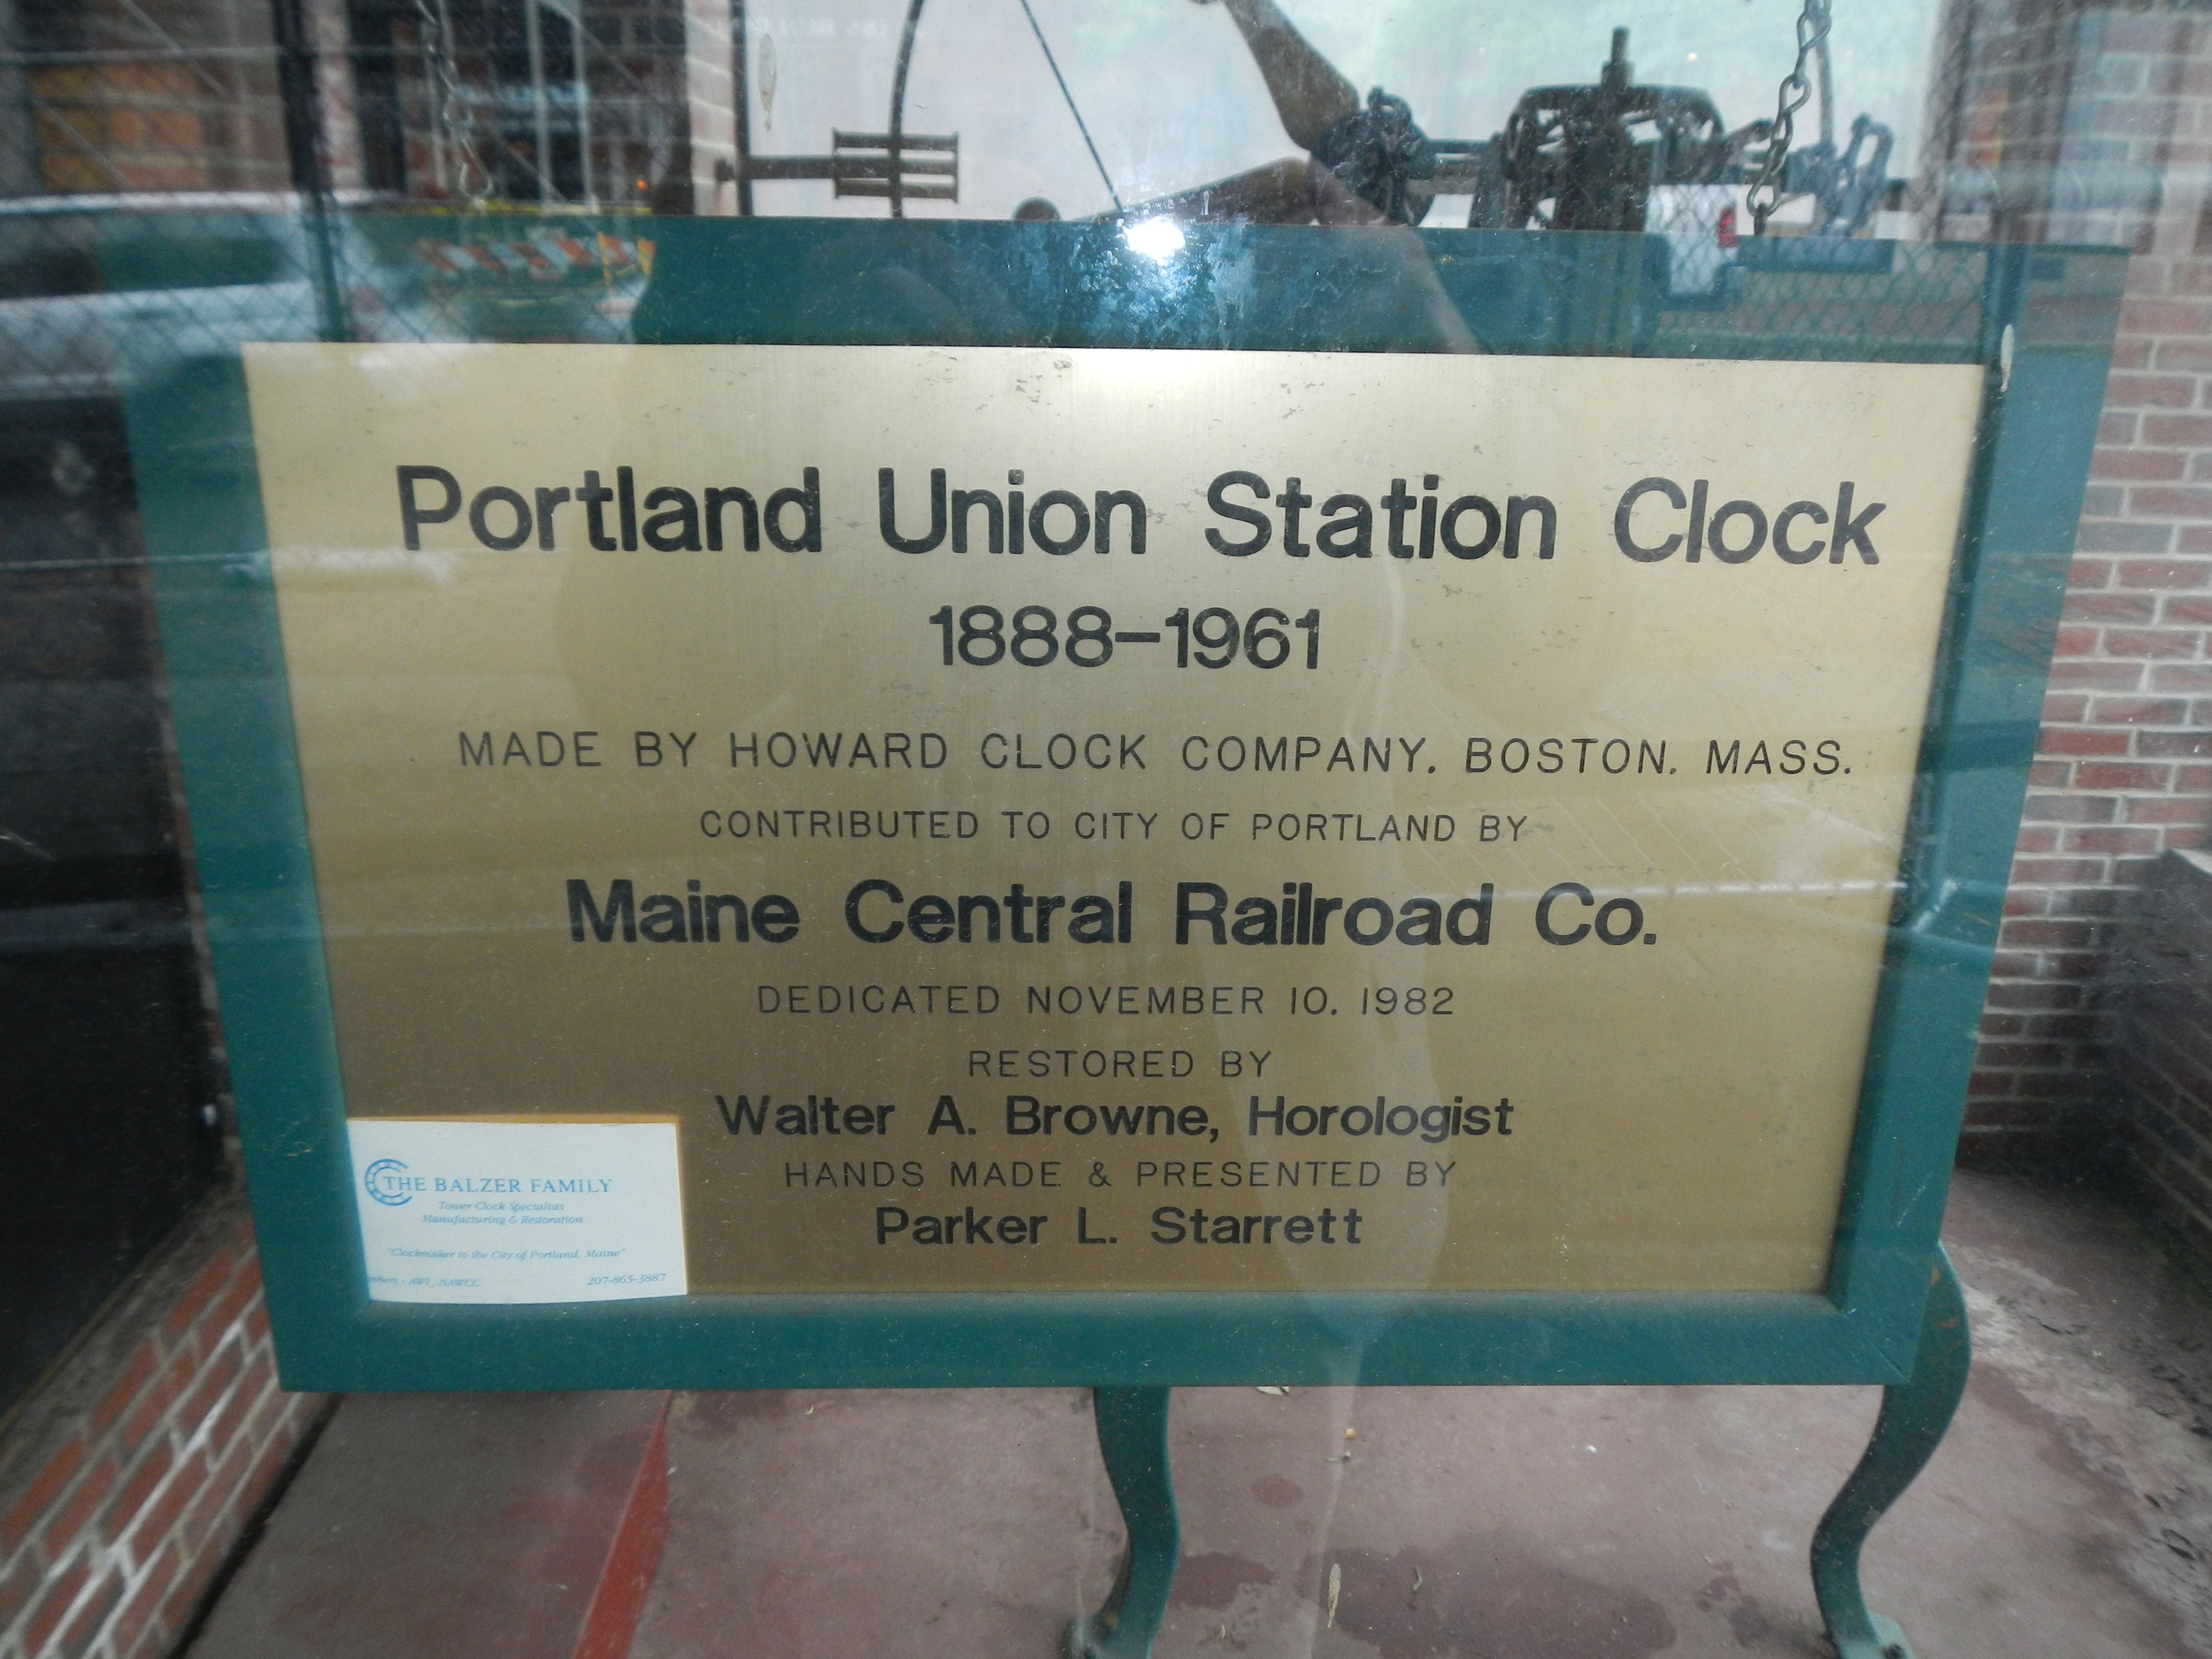 Porltand_Union_Station_Clock_Viewing_Plaque_2013.JPG